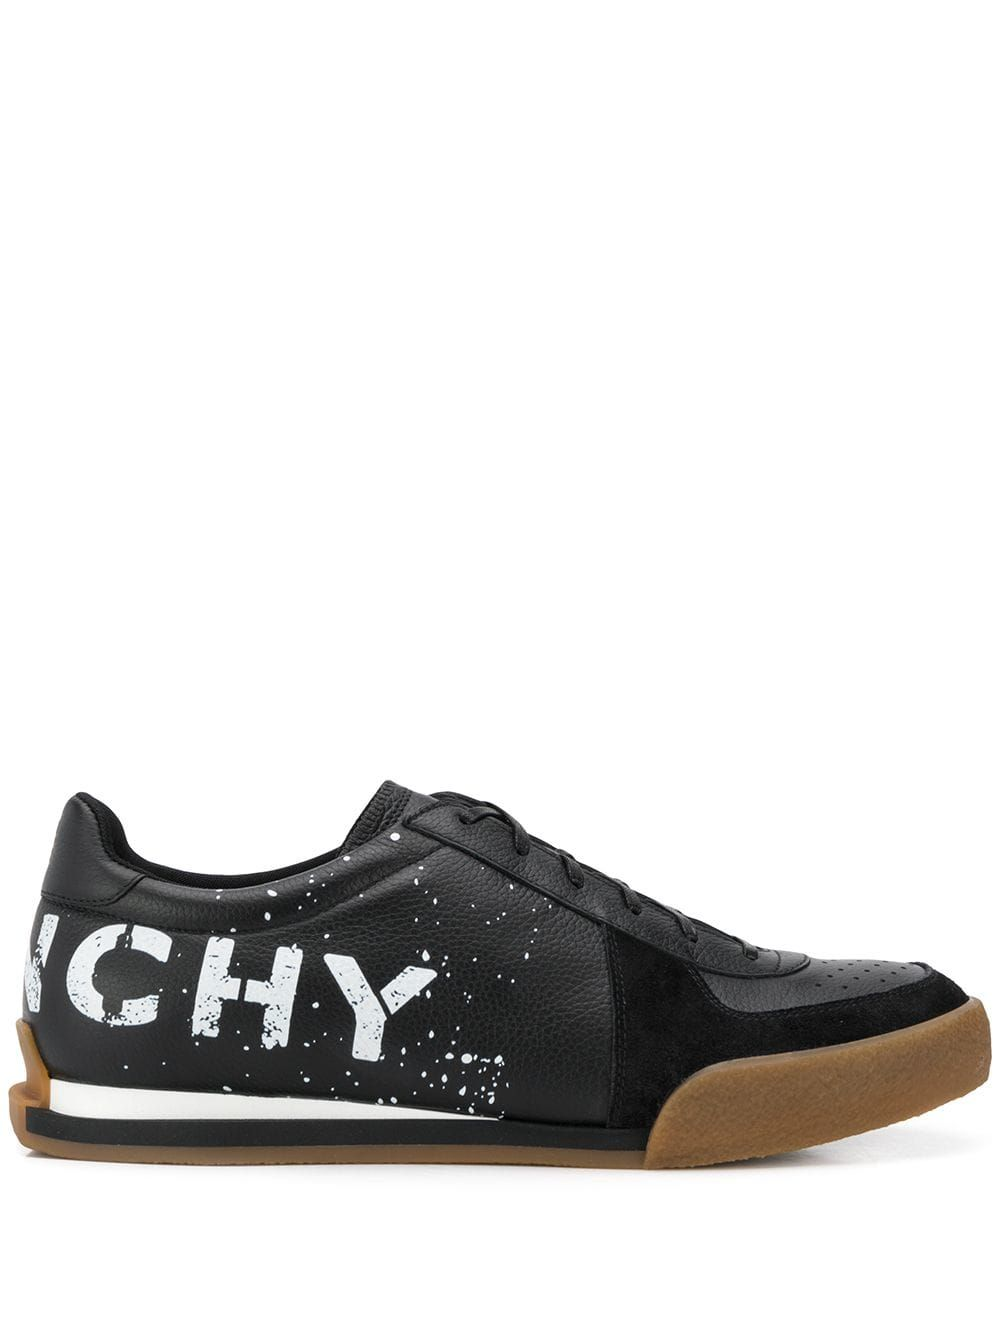 GIVENCHY GIVENCHY SPLATTER PRINT SNEAKERS BLACK. #givenchy